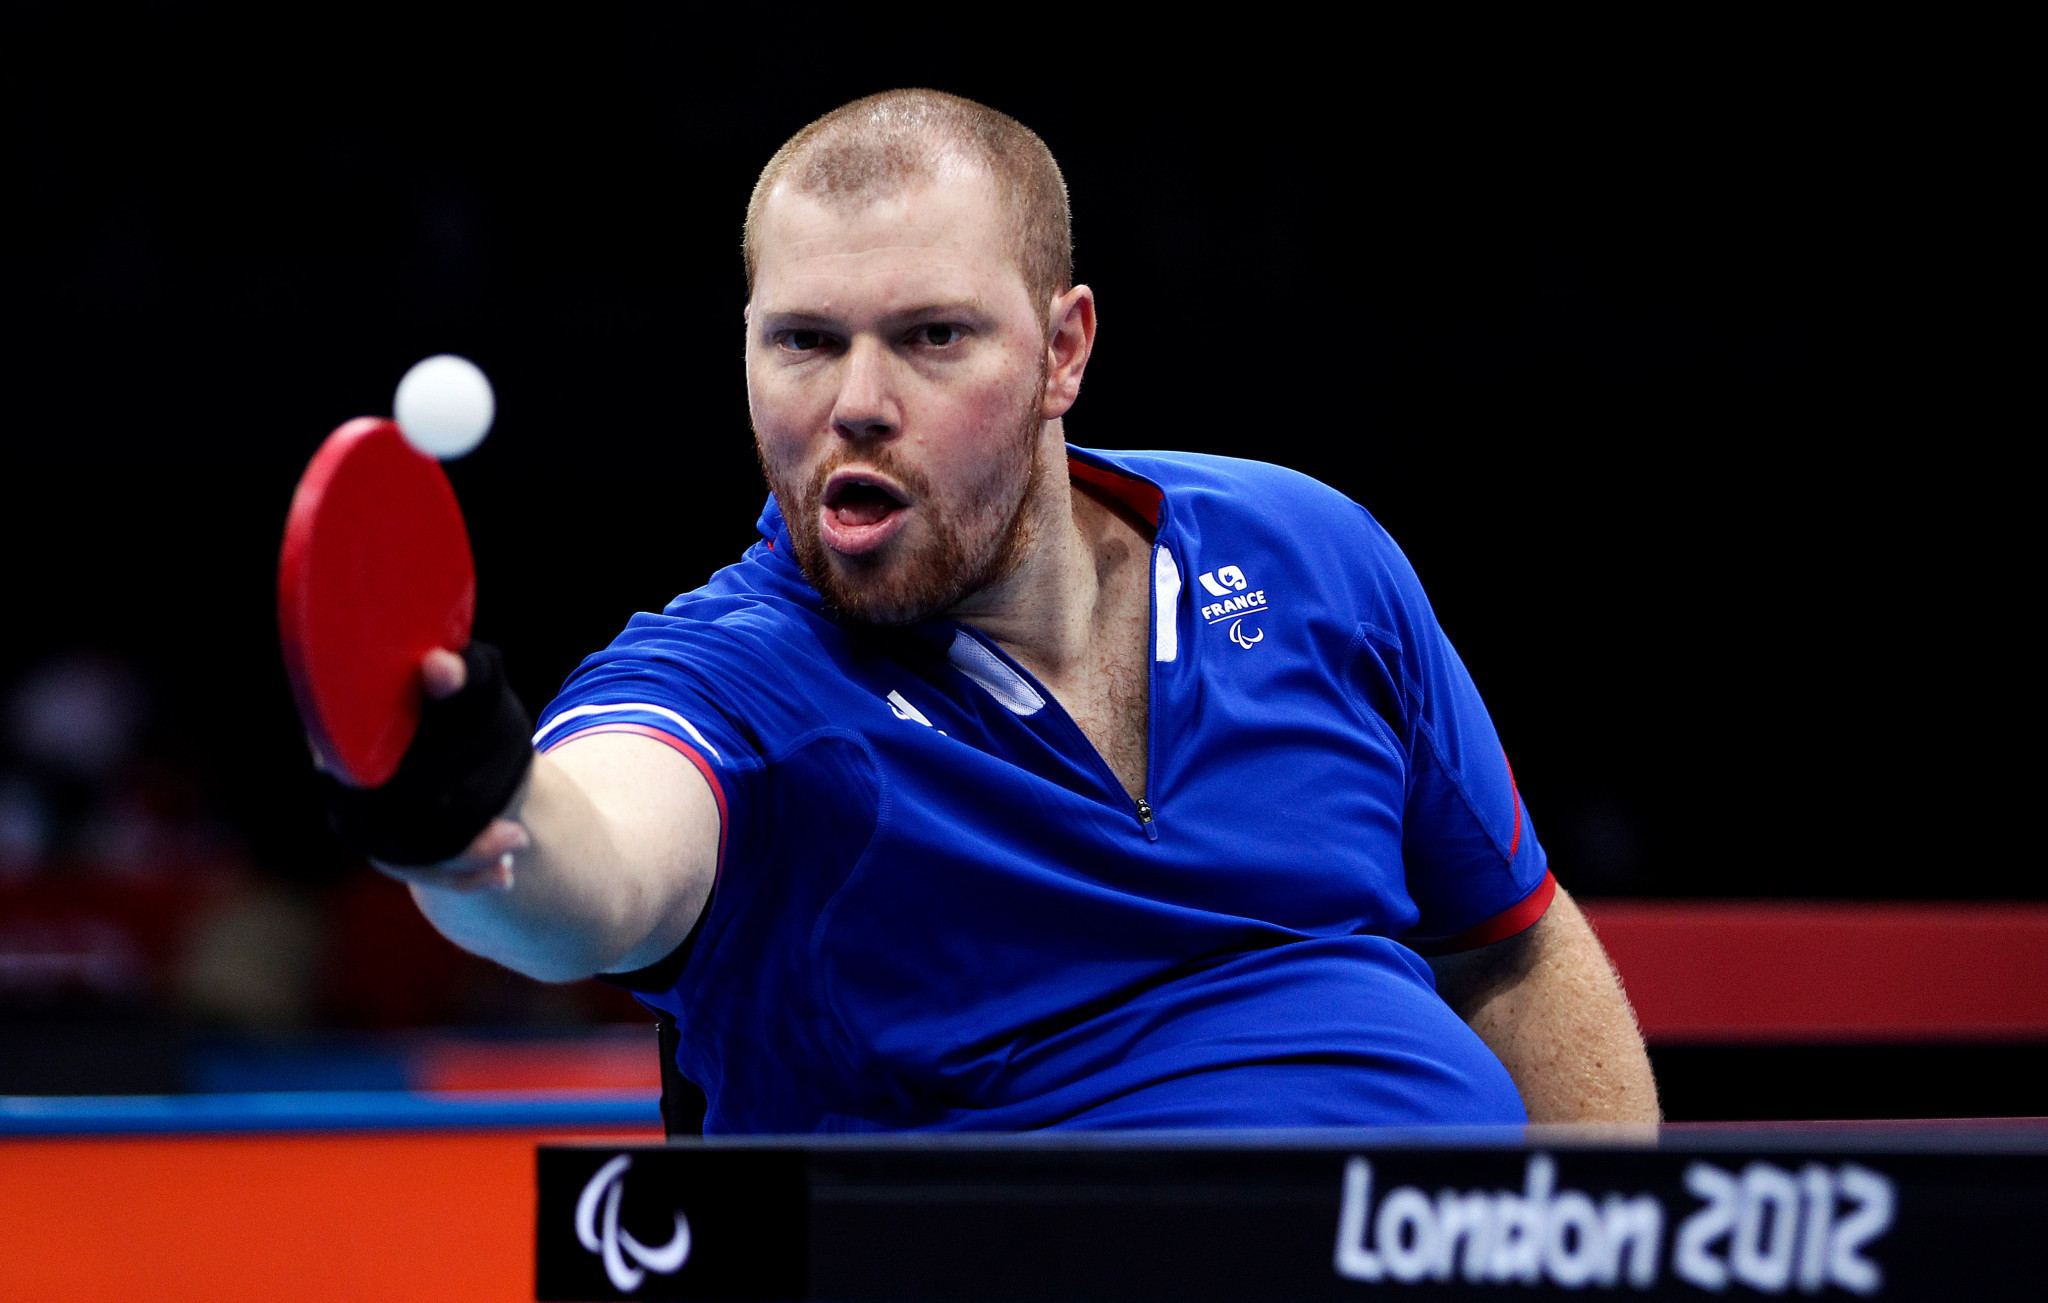 Lamirault completes double at Para European Table Tennis Championships